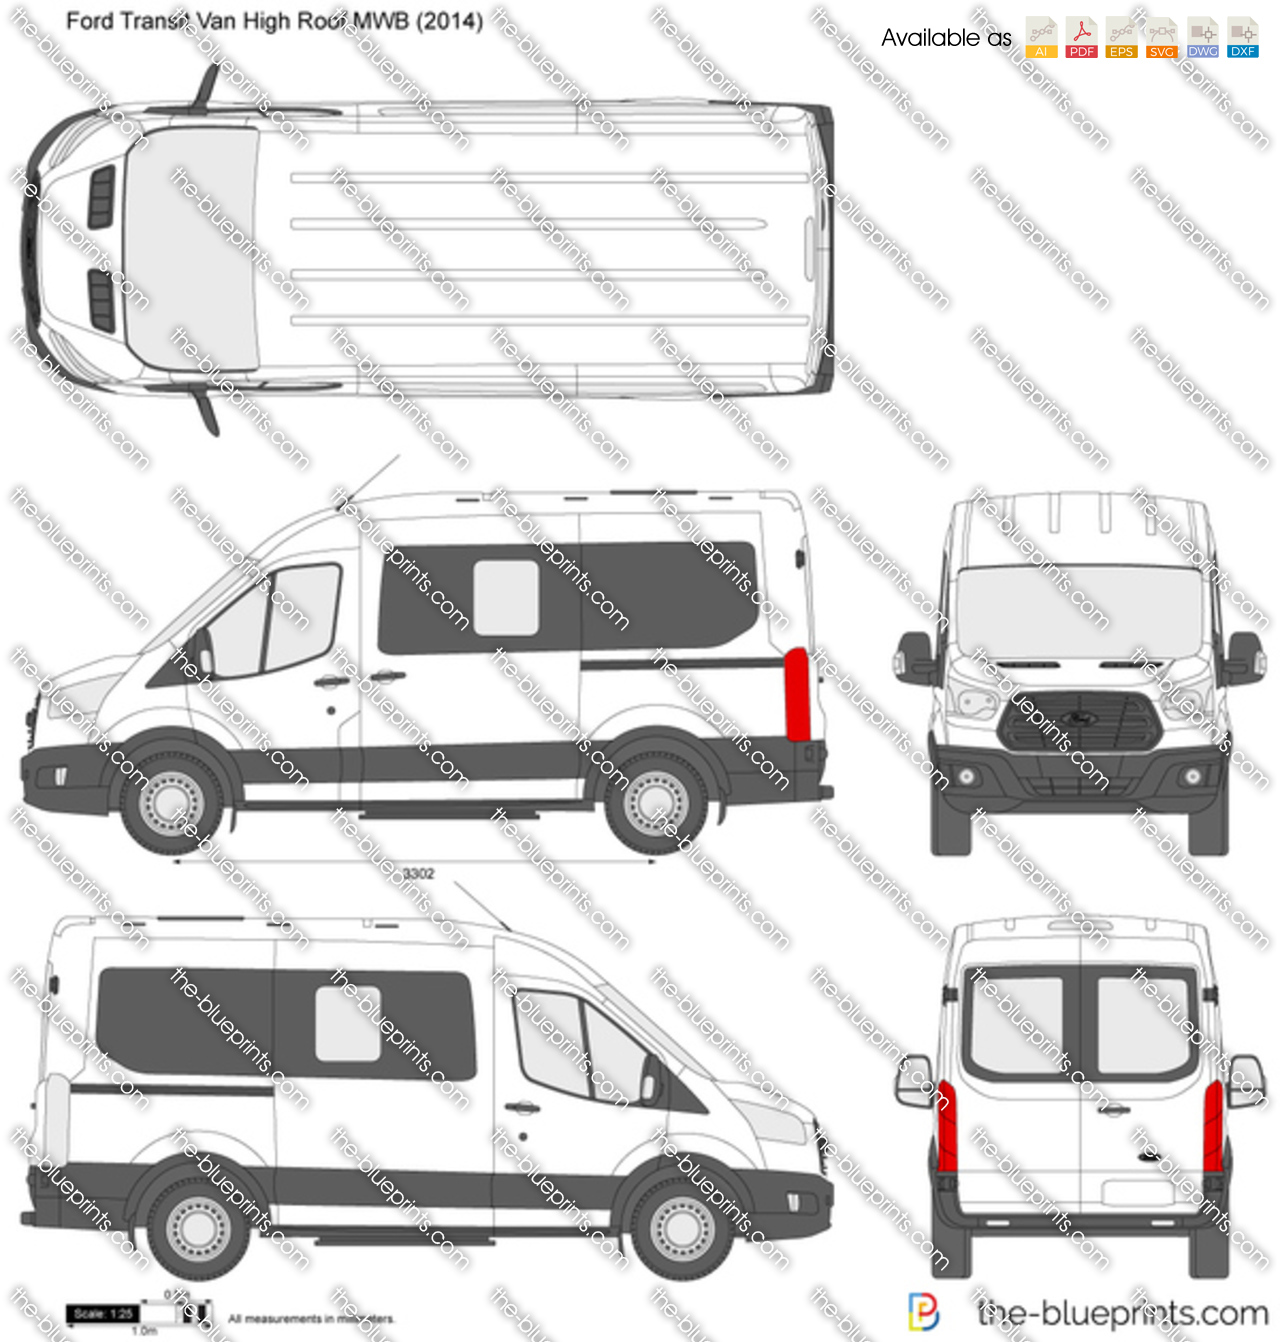 Ford Transit Van High Roof Mwb Vector Drawing